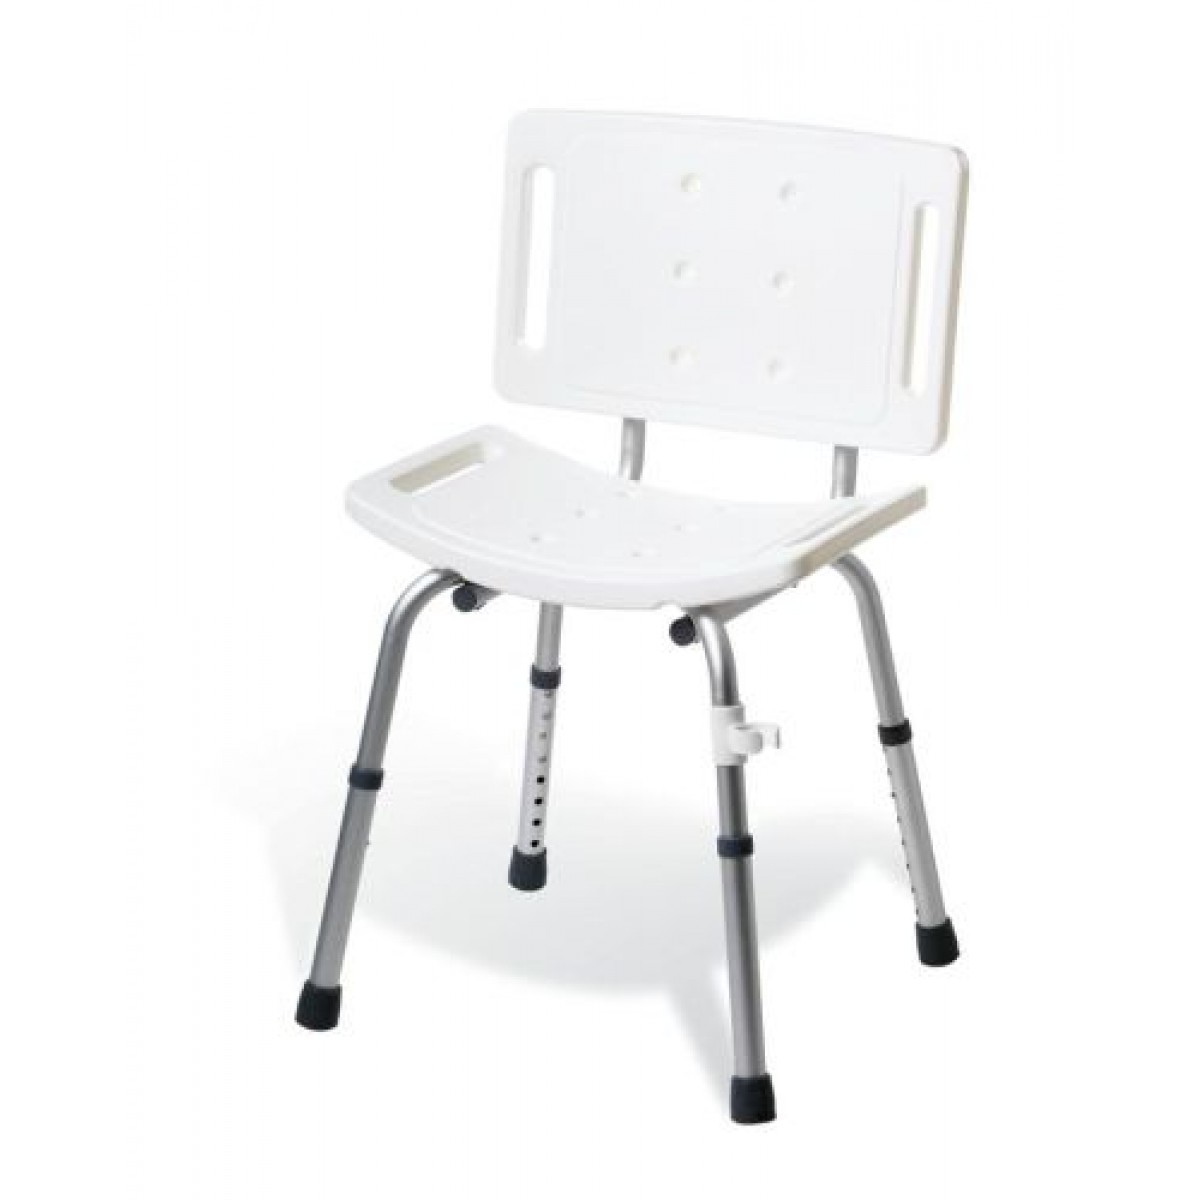 Shower Chair With Back Basic Shower Chair With Back G30402m